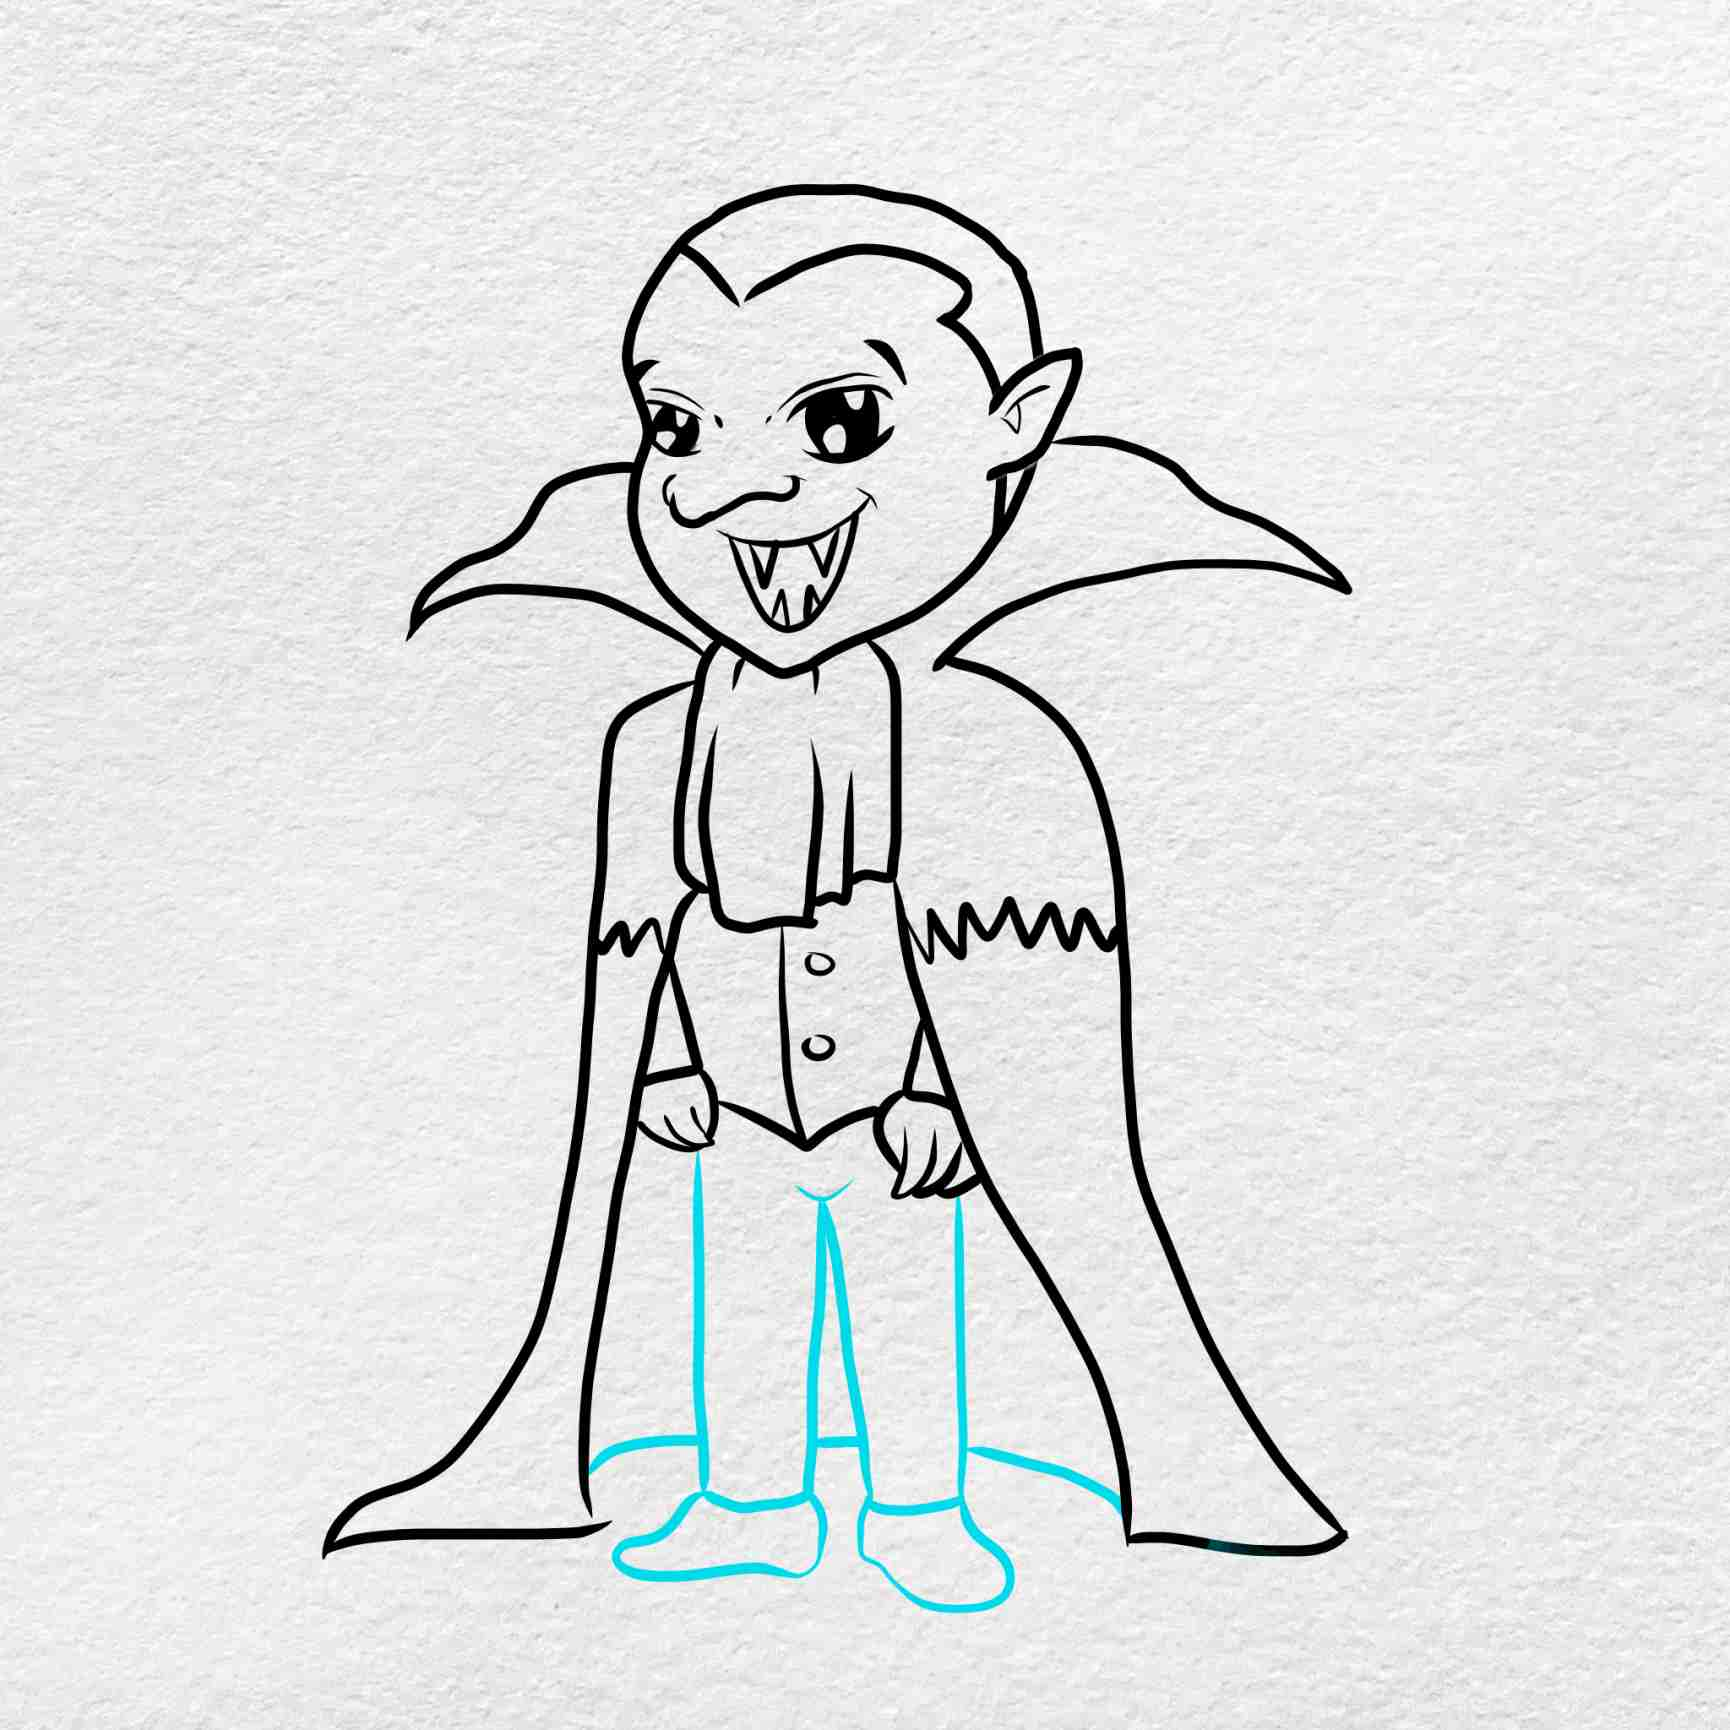 Vampire Drawing For Kids: Step 8